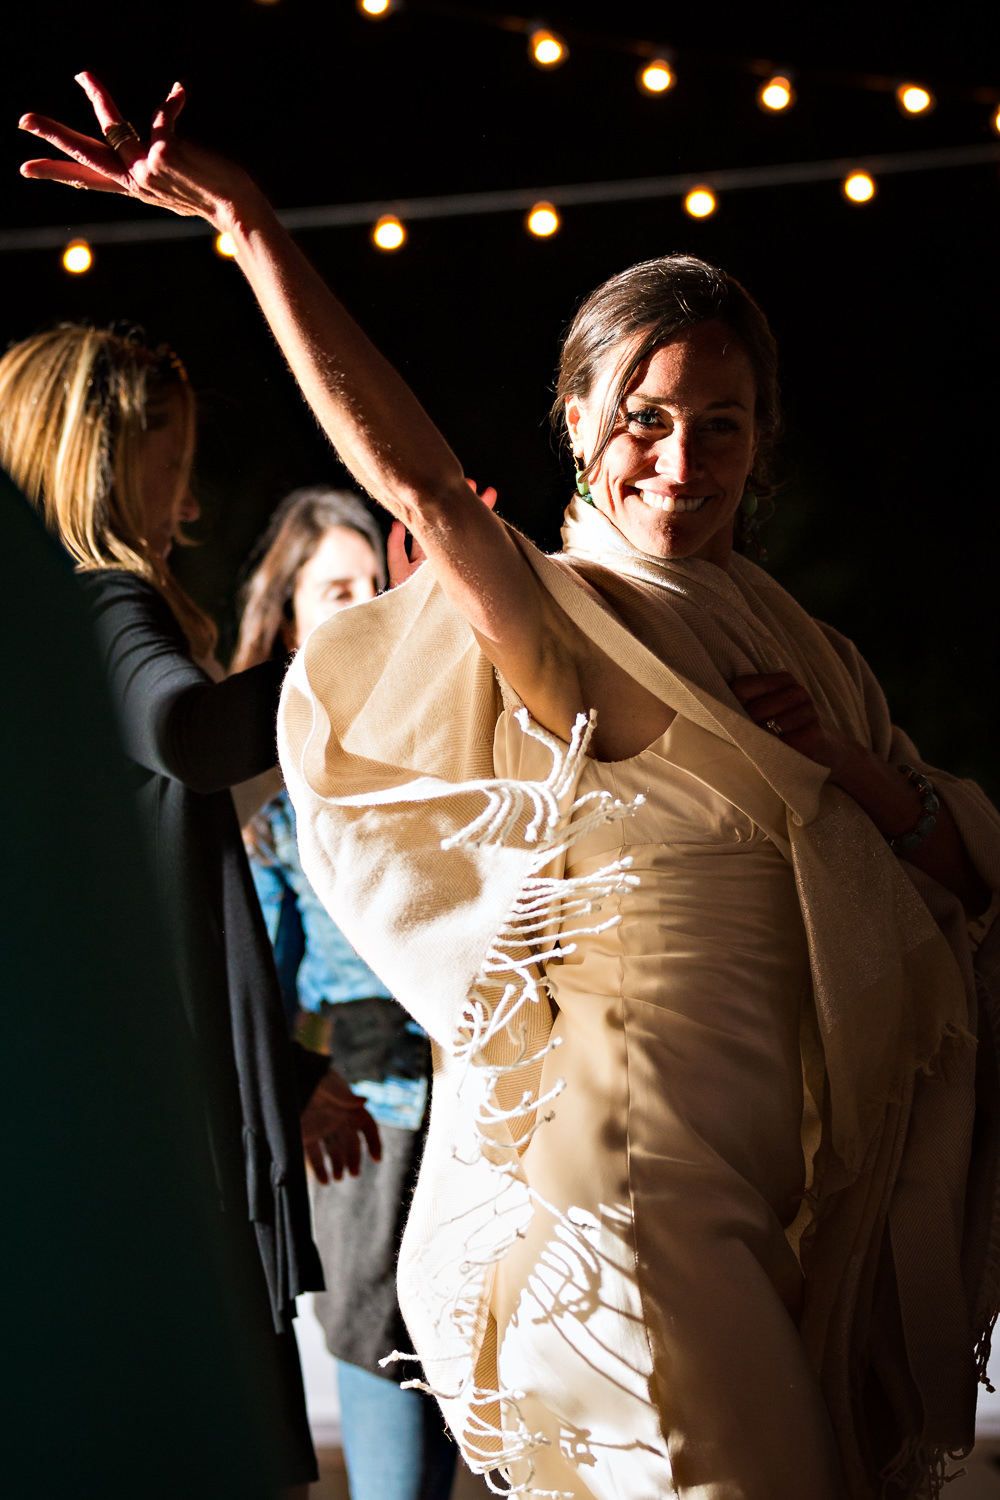 mcleod-montana-wedding-bride-dances-to-celebrate.jpg